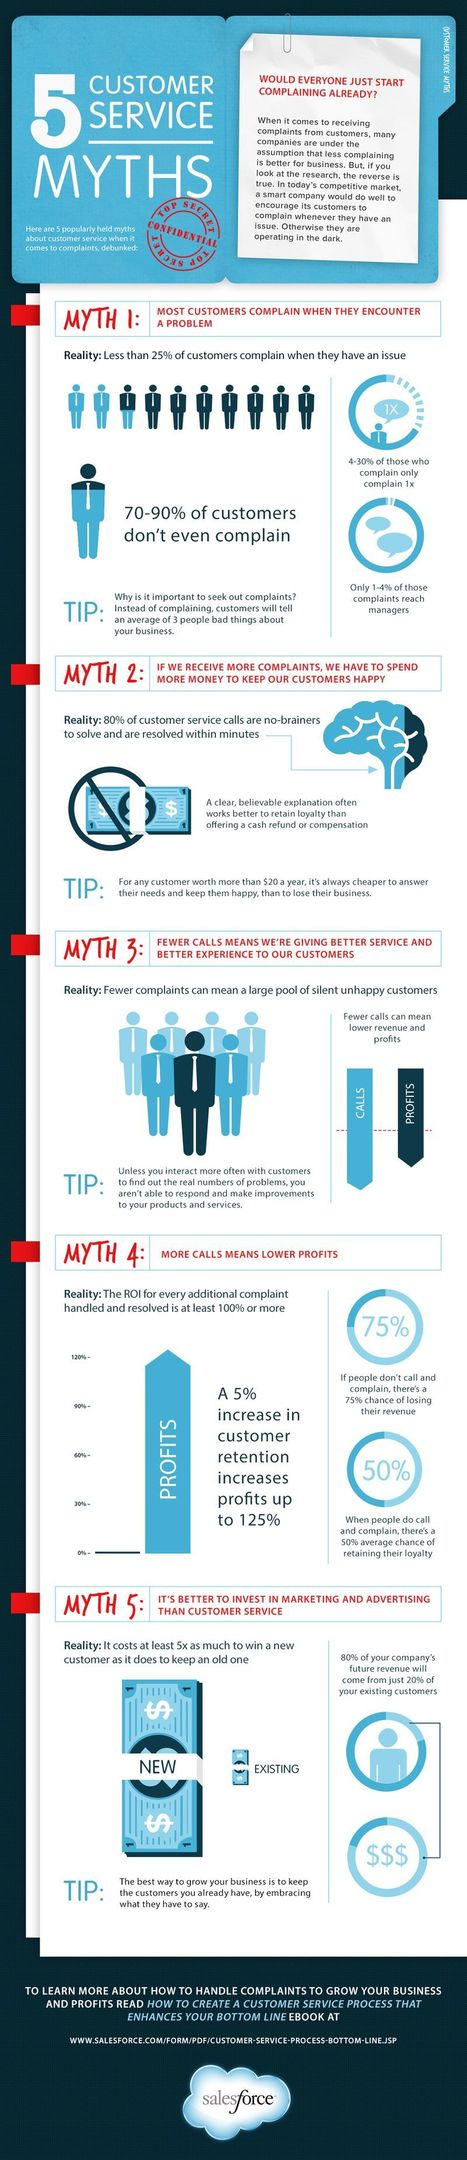 5 Customer Service Myths You Can't Fall For [Infographic] | CustomerThink | Help For Small Businesses | Scoop.it